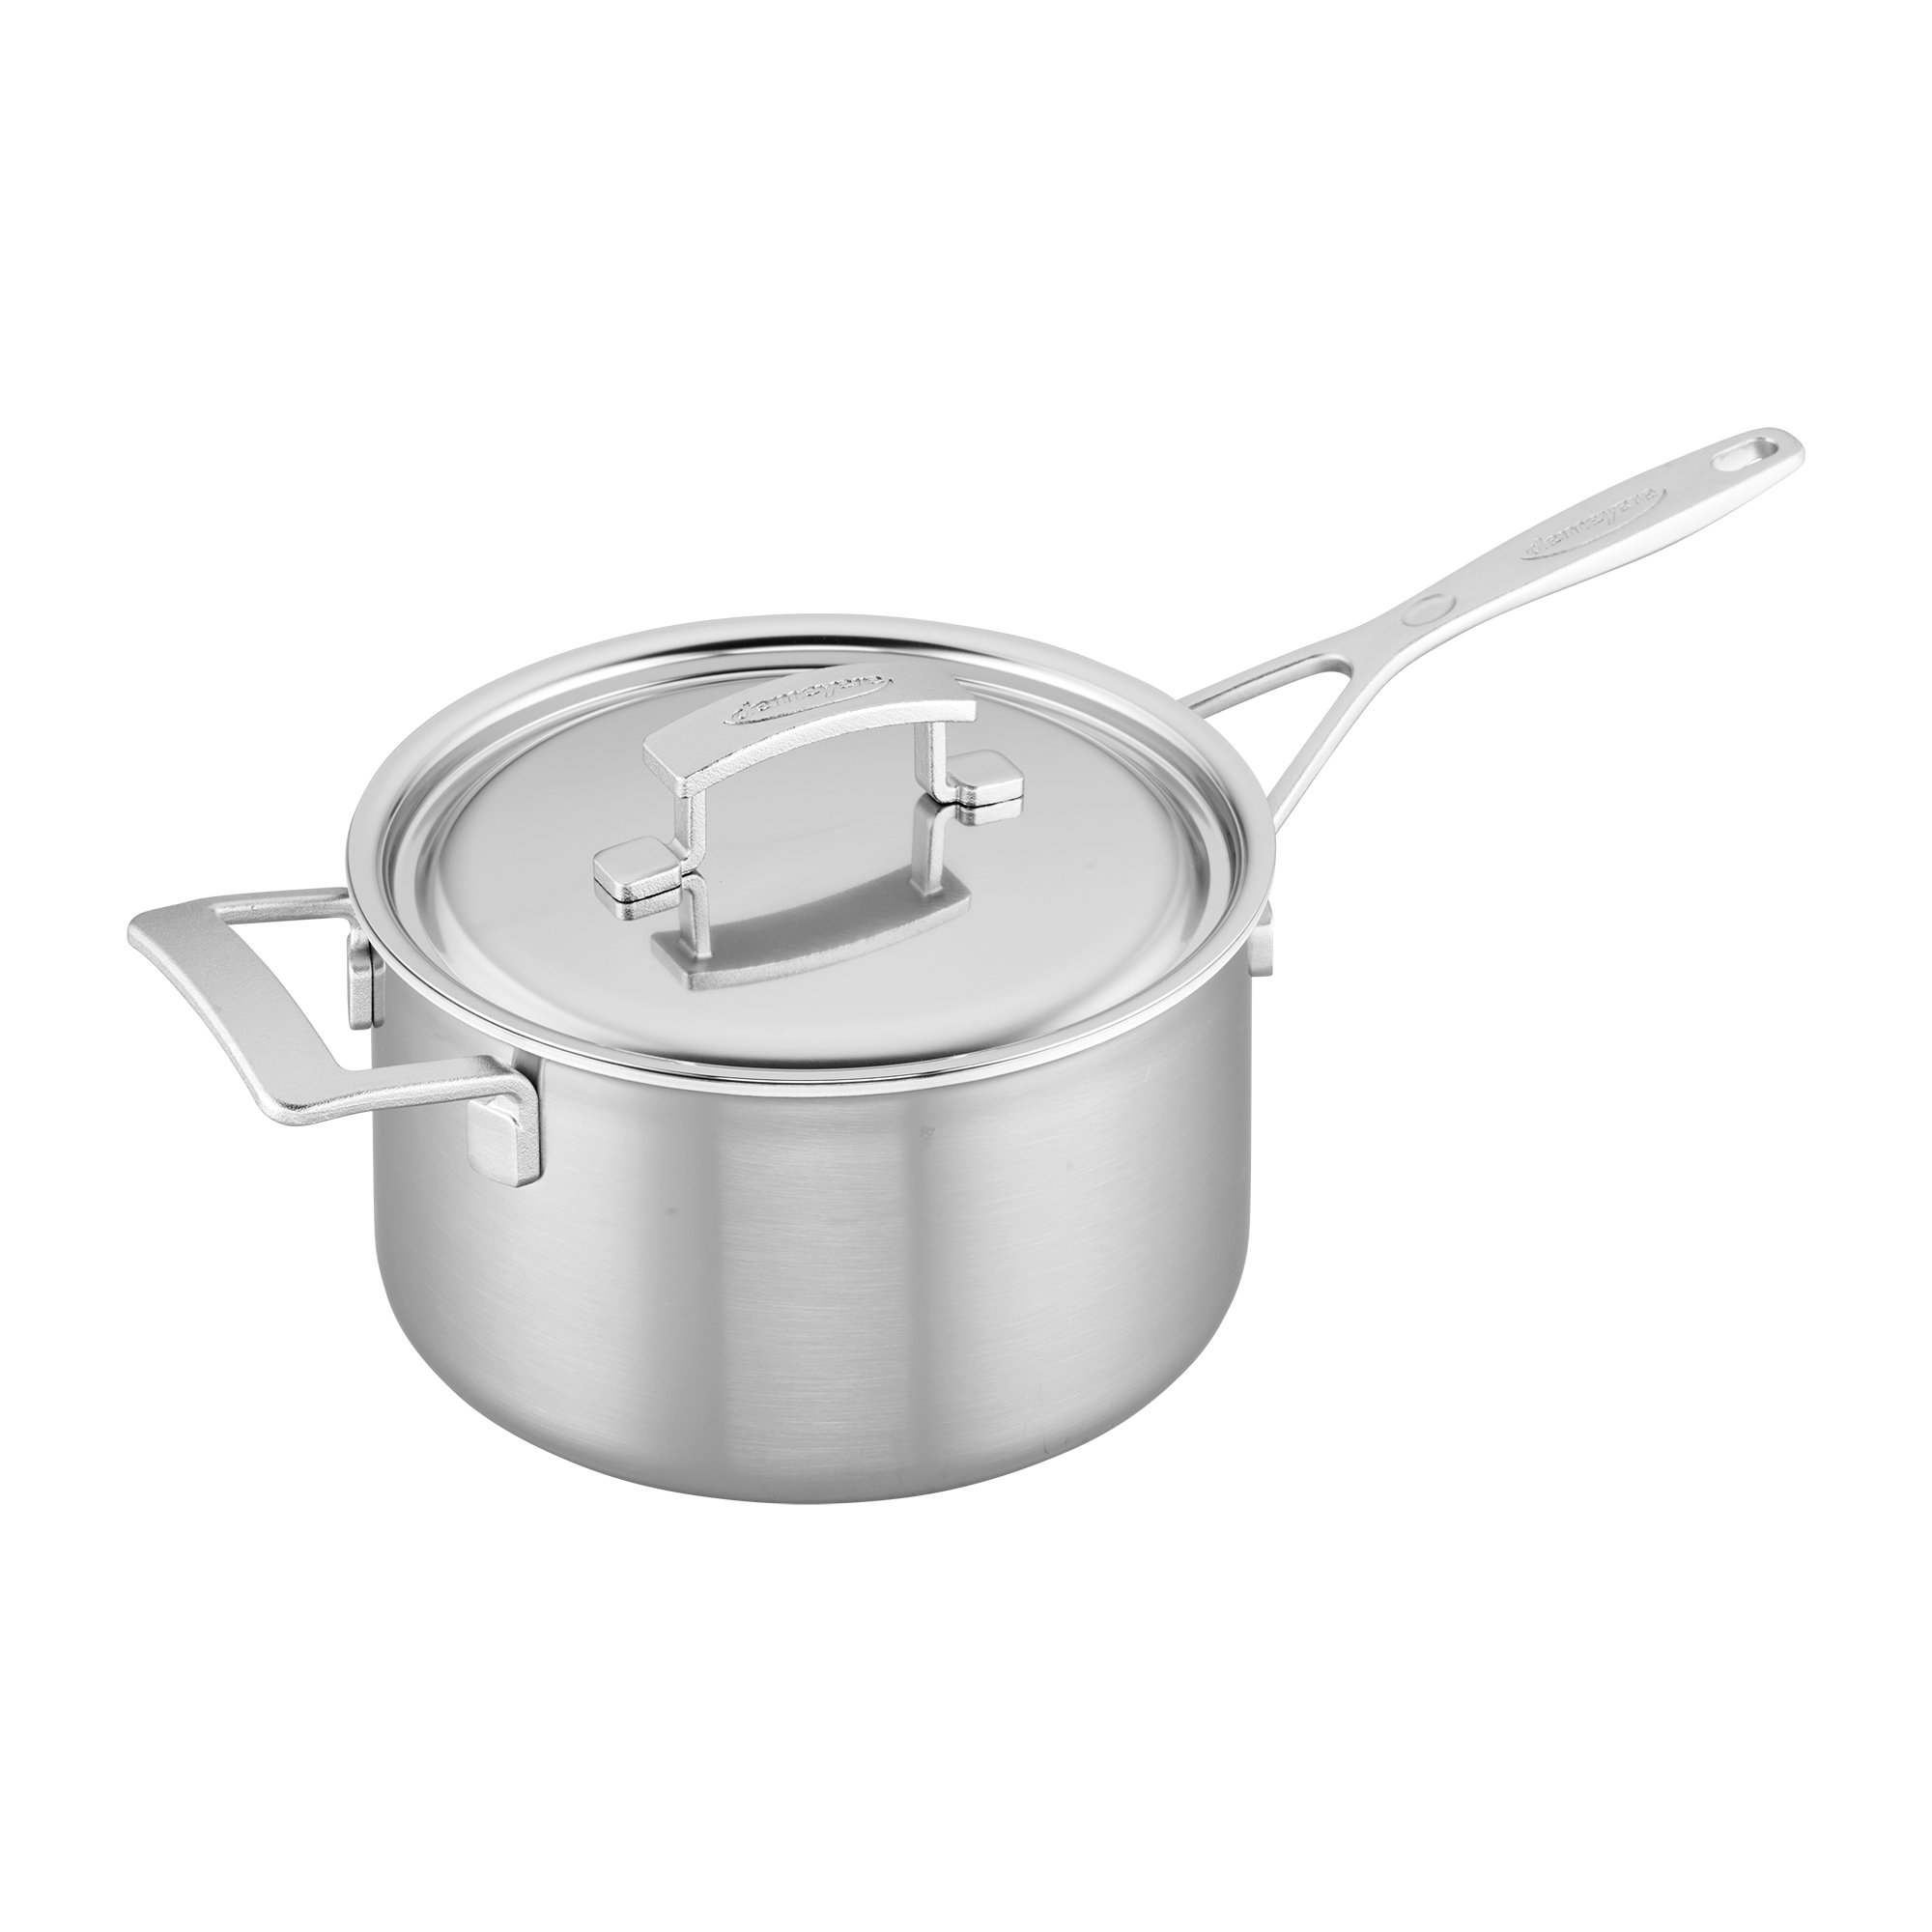 Demeyere Industry 5-Ply 4-qt Stainless Steel Saucepan